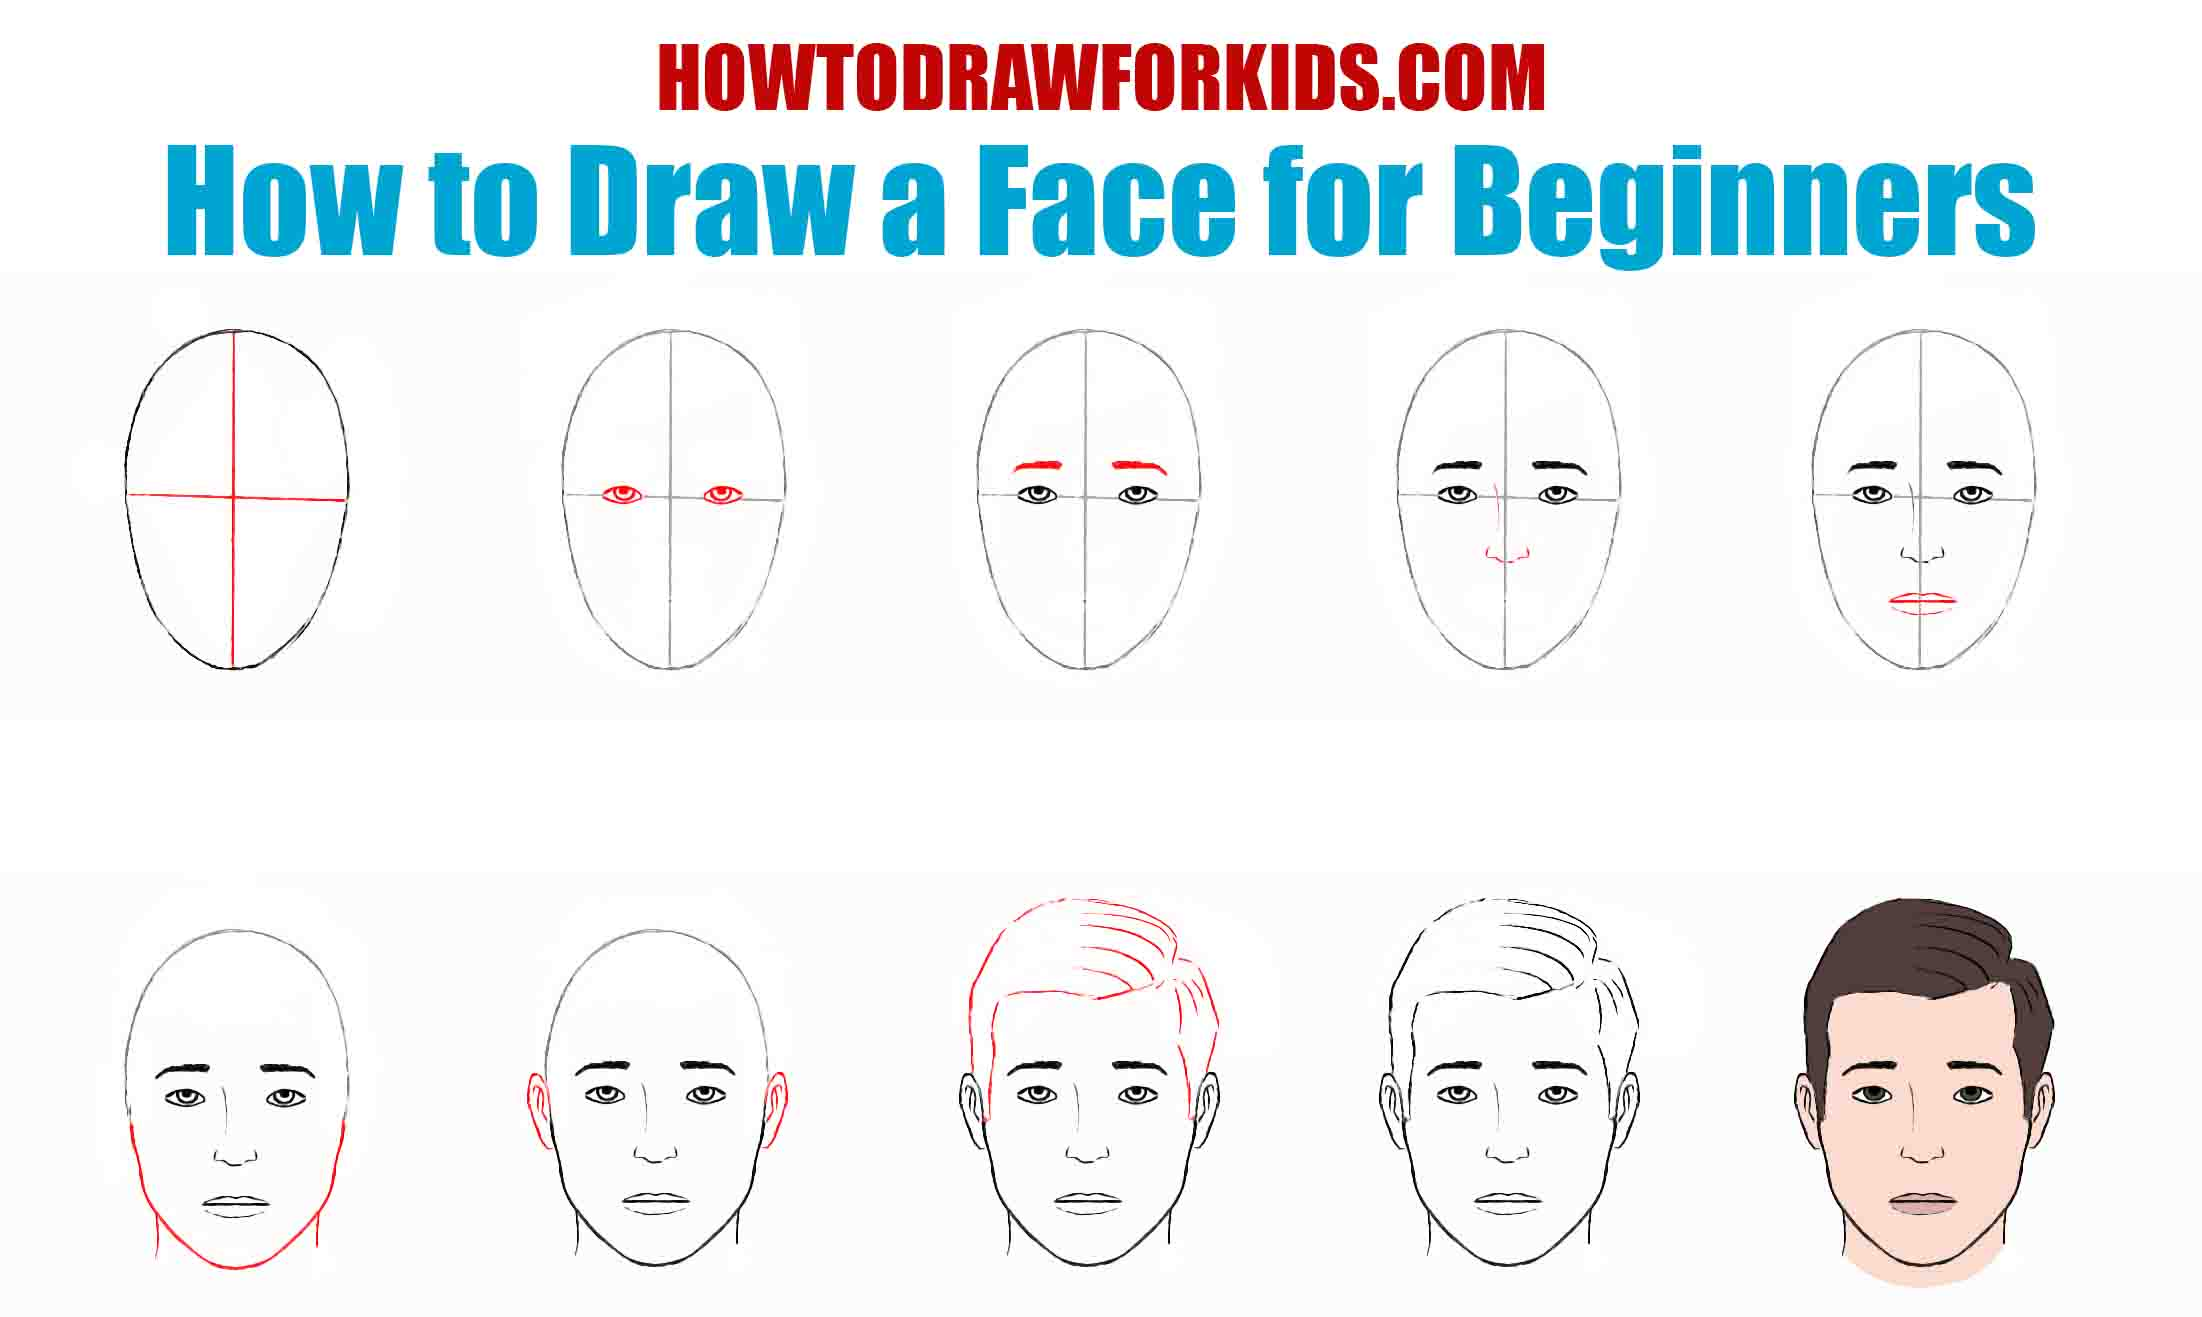 How to Draw a Face for Beginners